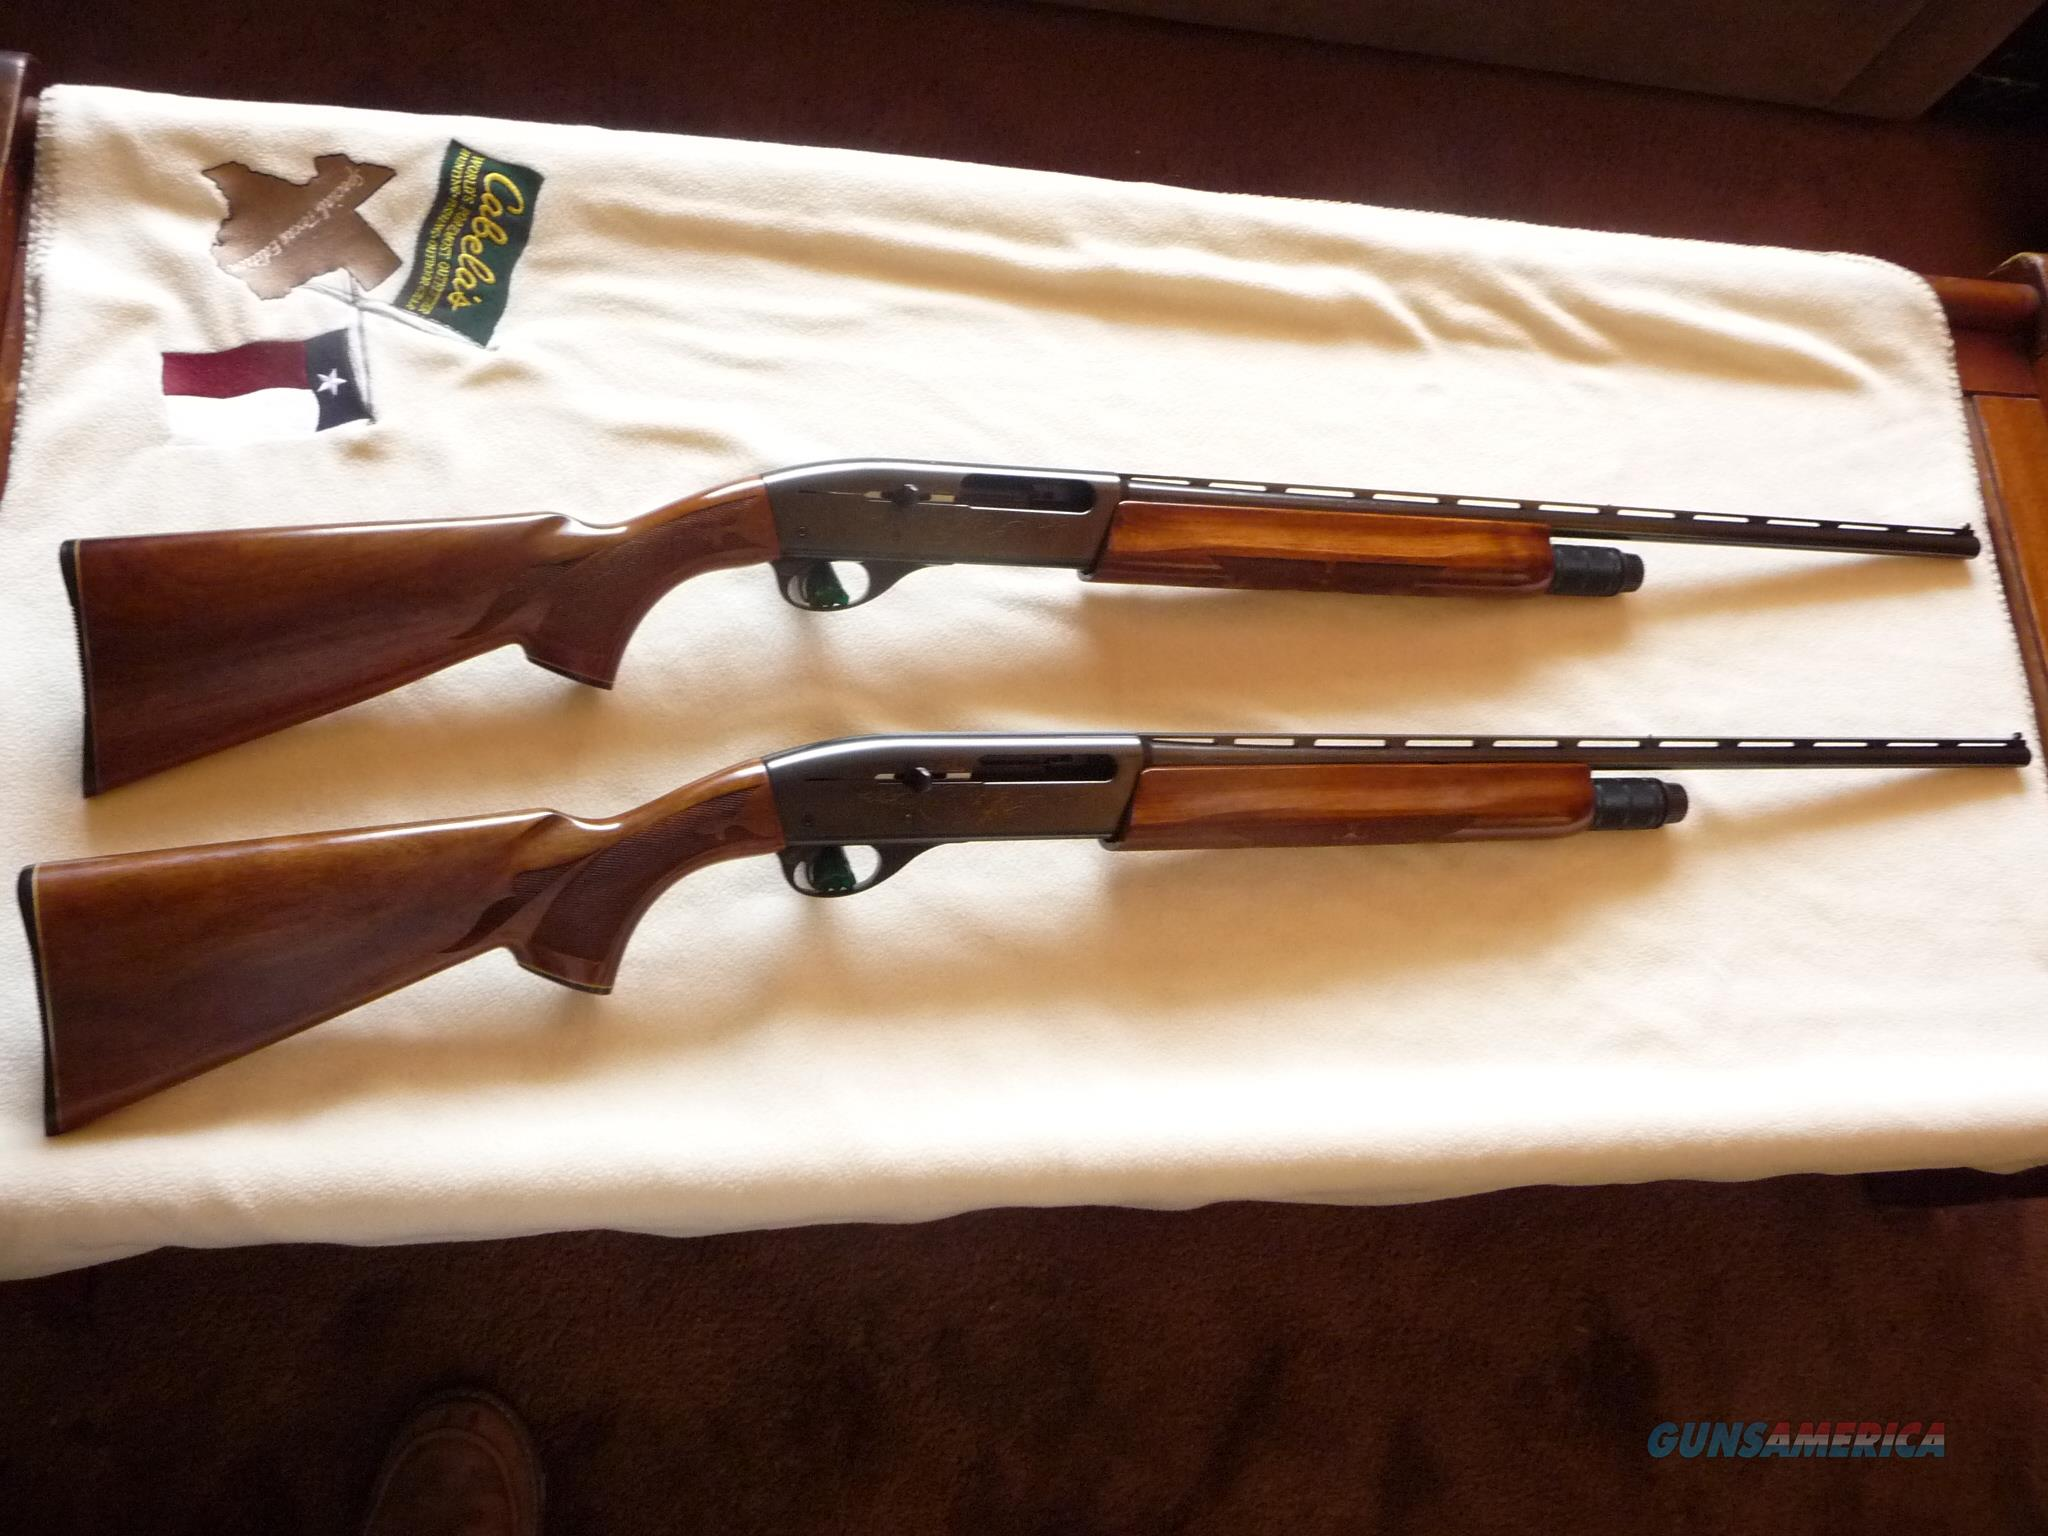 dating a remington 1100 shotgun Remington 870, 700, 1100 serial/barrel number lookup remington serial remington 700 or 1100 serial numbers can be decoded 870 or any other remington shotgun.